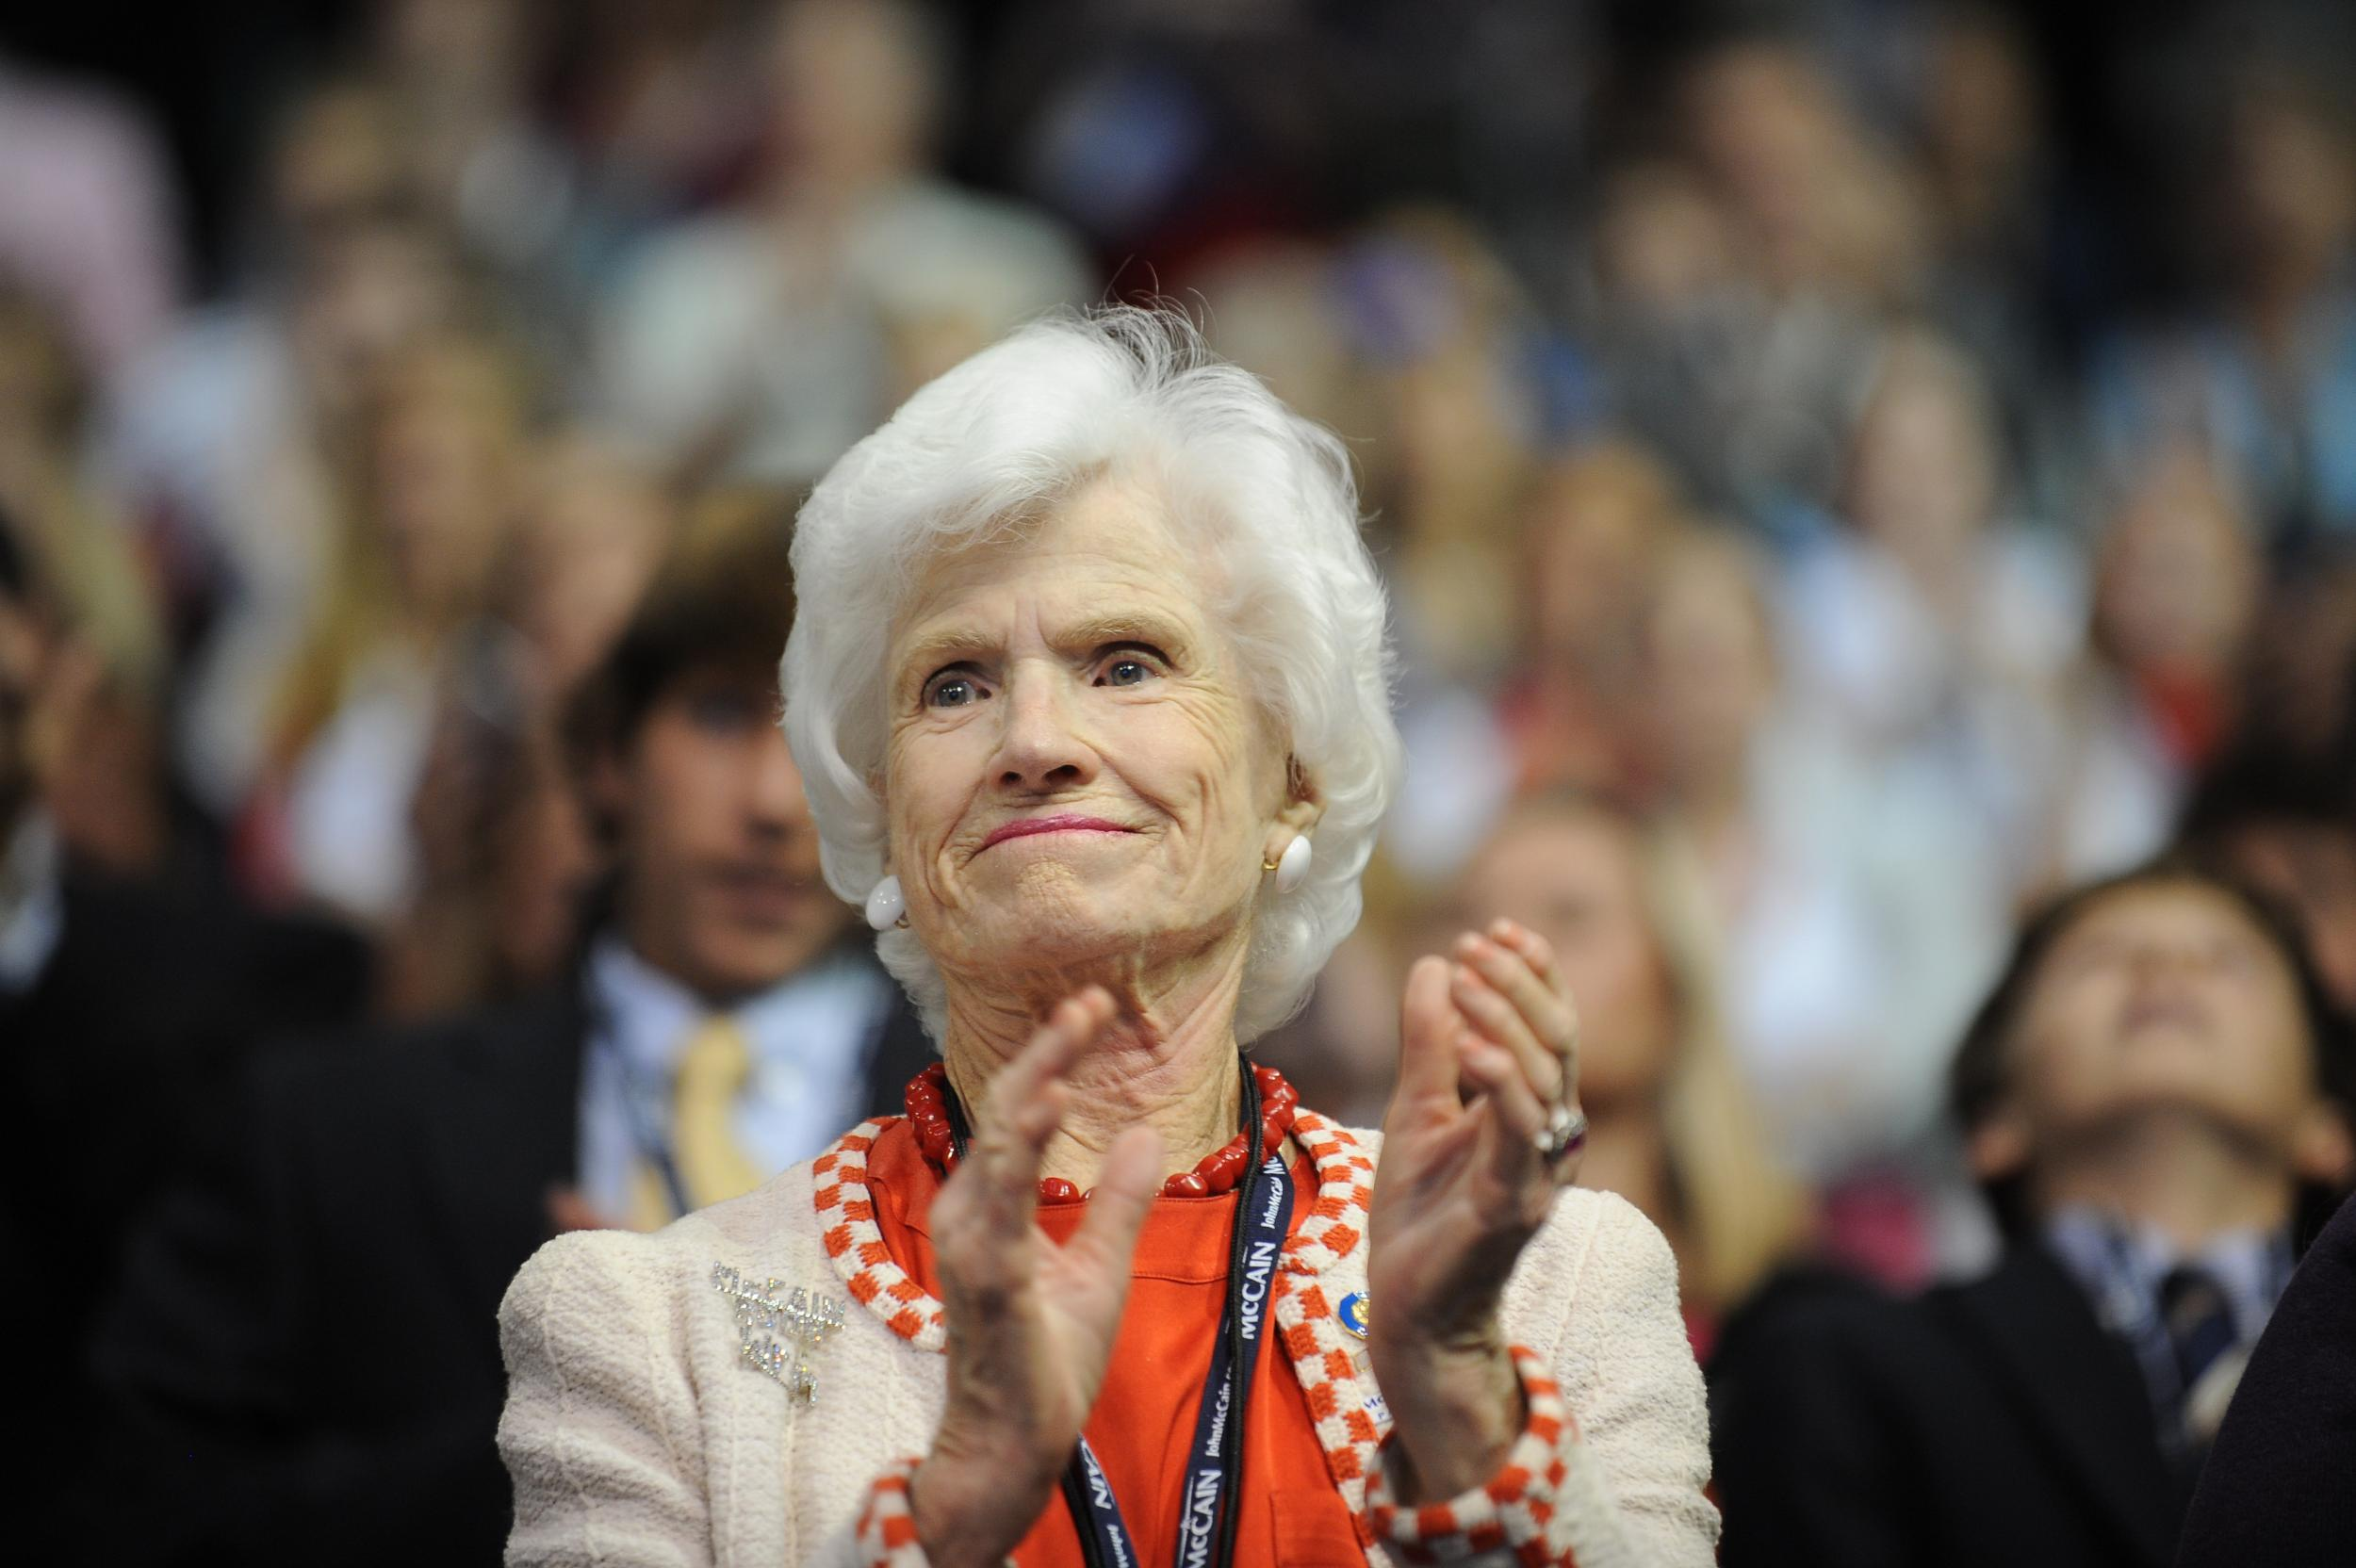 John McCain's 106-year-old mother Roberta to attend late senator's funeral